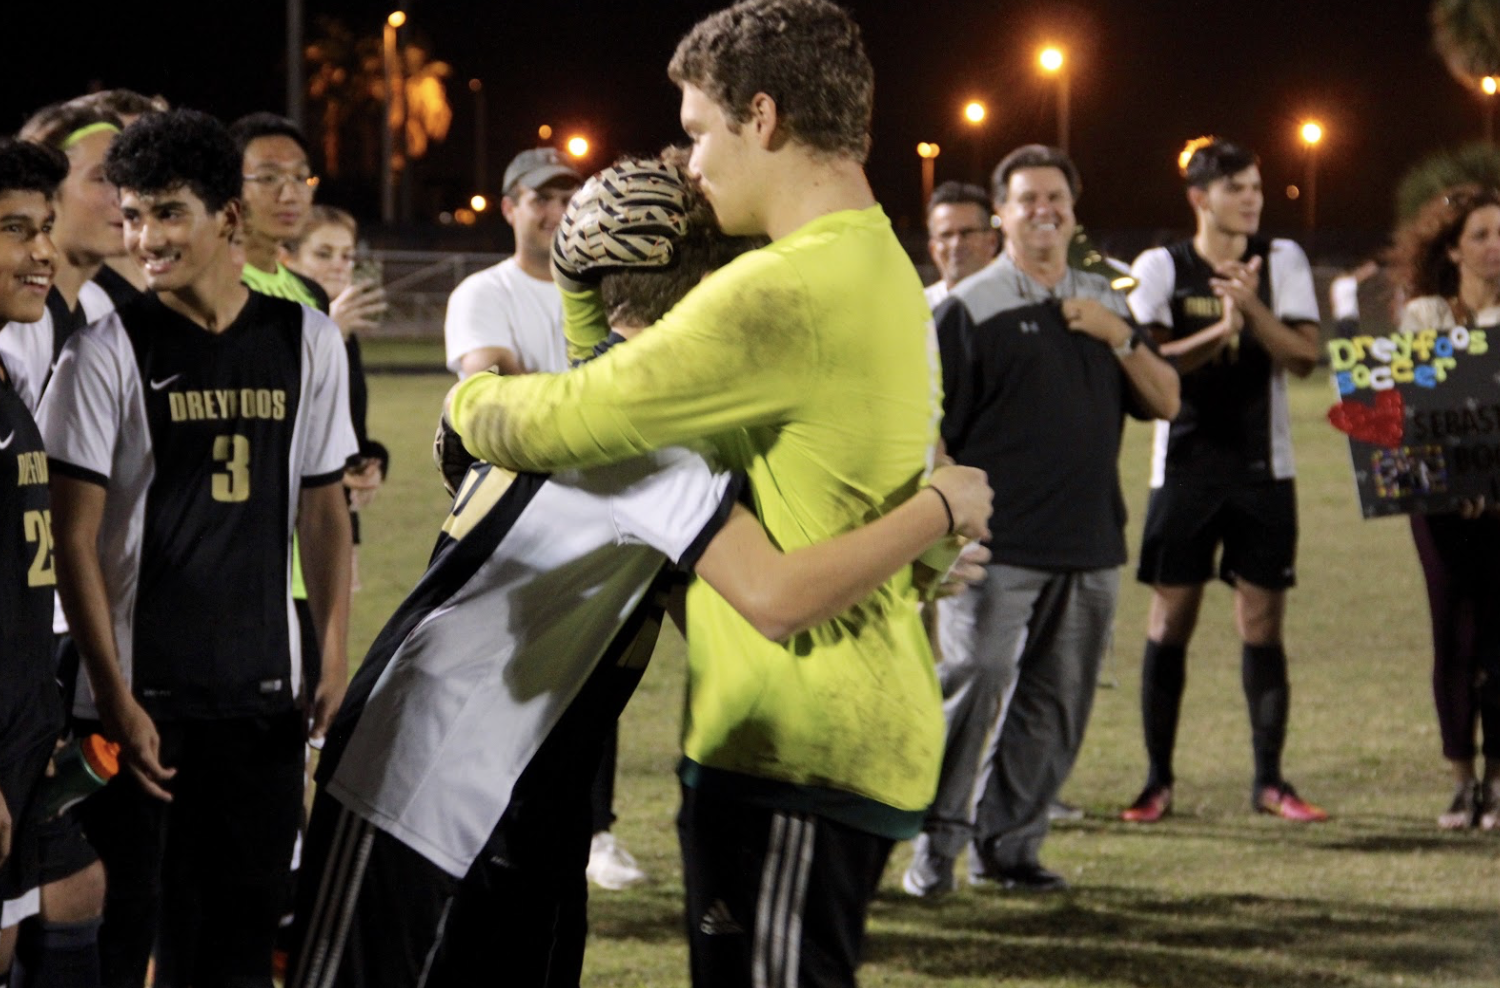 "Communications senior Skyler Buitrago embraces his younger brother, band freshman Nico Buitrago, after Nico delivered a tear-jerking speech thanking his brother for their most memorable times together growing up. As Skyler and other seniors on the team prepare to graduate, a special ceremony was held at their final regular season game, where families and fellow players honored the seniors. ""Playing with Nico was great,"" Skyler said. ""We're at the age gap where I wasn't in middle school with him so I only get this one year in school with him before I head out. I'm going to keep working with him and pushing him because he's an amazing athlete, and he will see that very soon. I'm so glad that my for my last year at Dreyfoos I was able to spend the season with him by my side."""